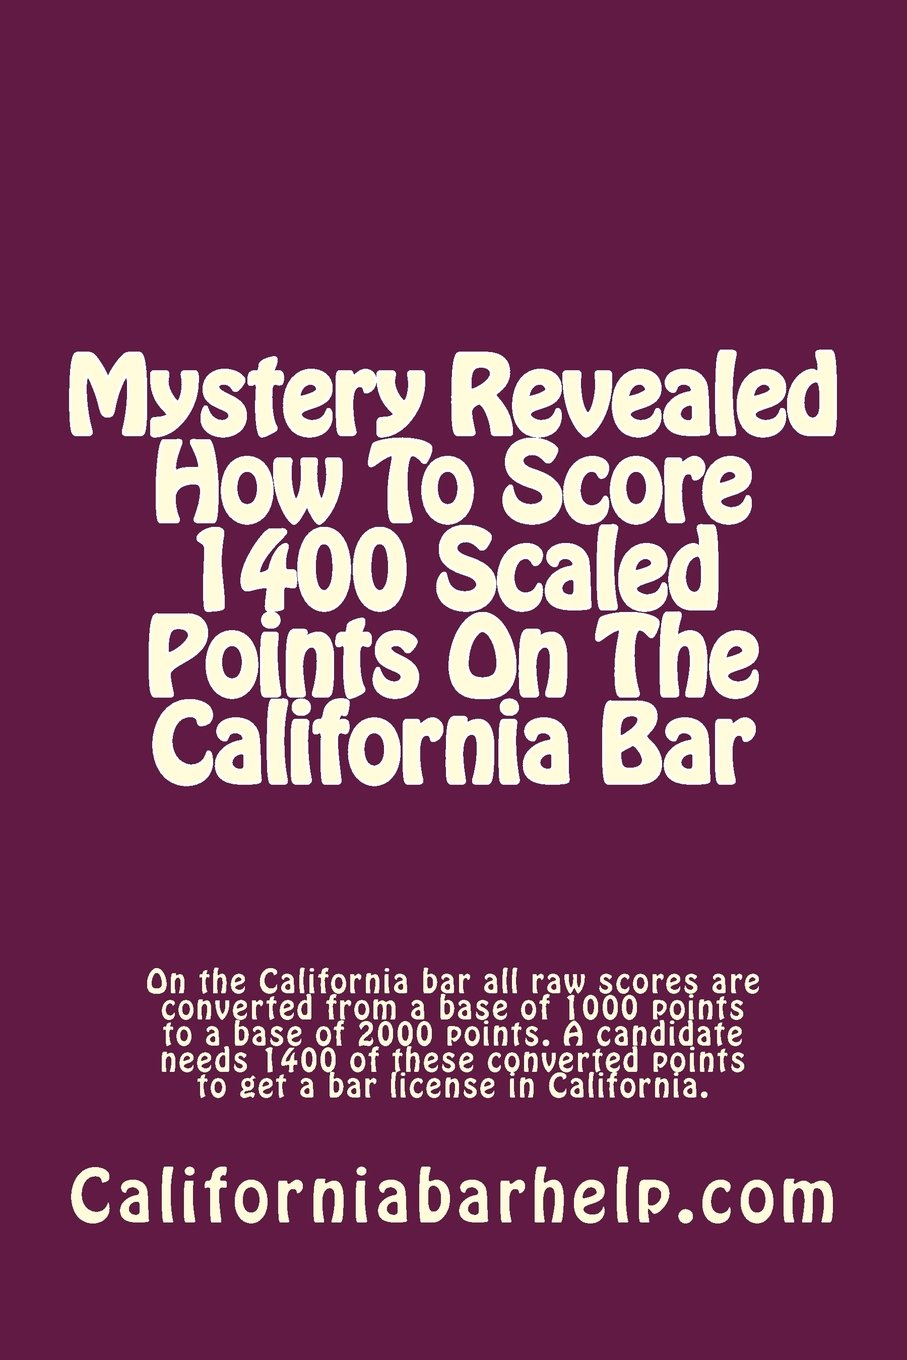 Californiabarhelp.com Mystery Revealed How To Score 1400 Scaled Points On The California Bar: On the California bar all raw scores are converted from ... points to get a bar license in California. pdf epub